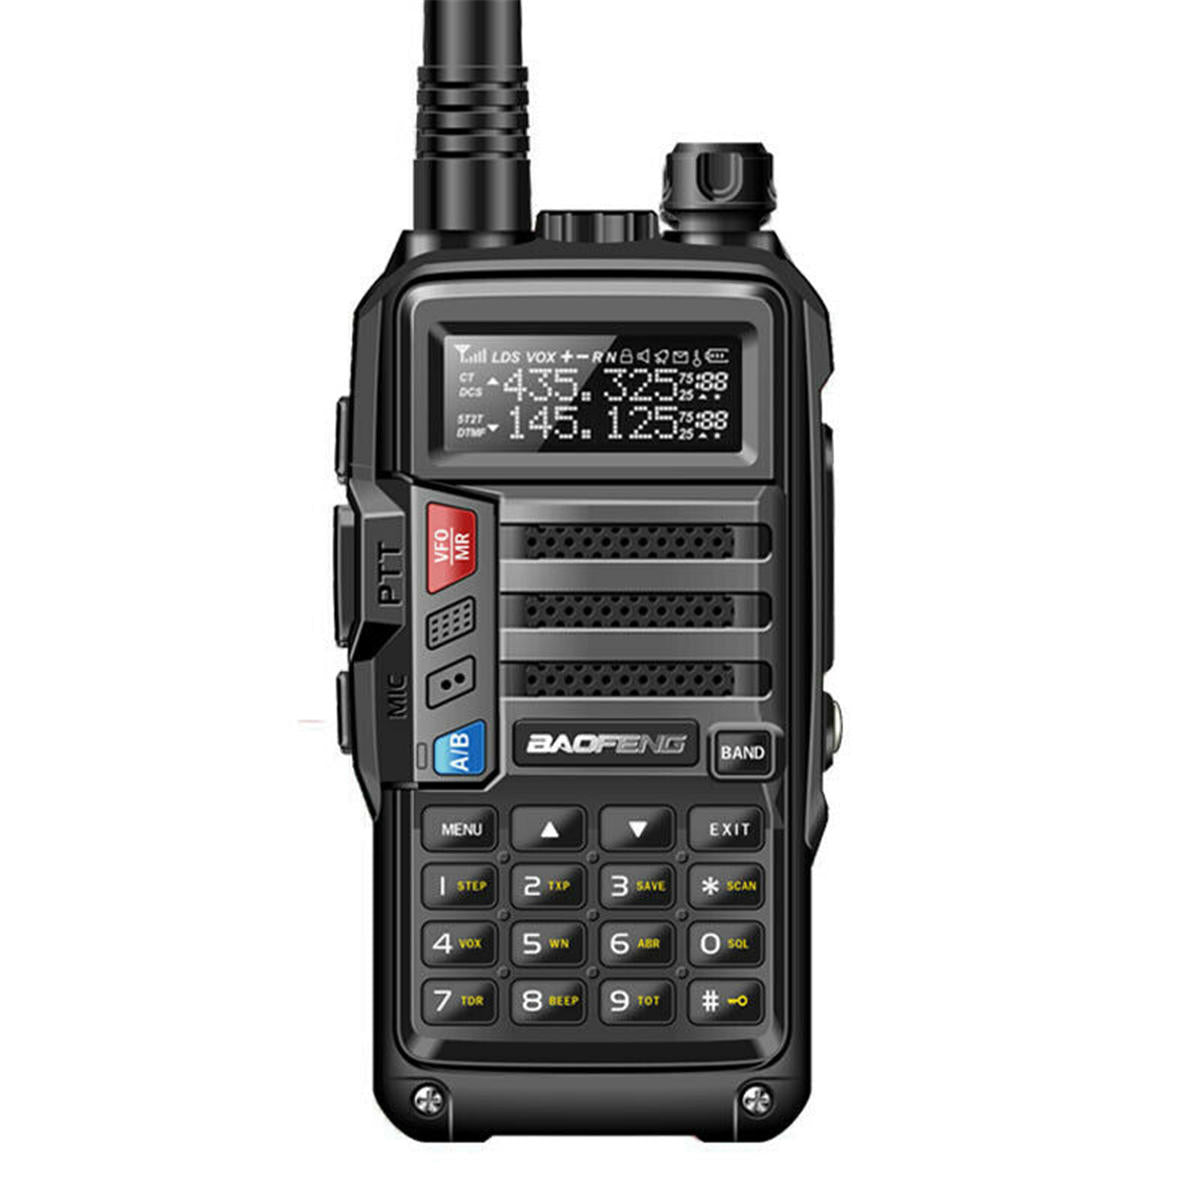 BaoFeng UV-S9 8W Two Way Radio VHF UHF Walkie Talkie CB Funk-Transceiver 10km Long Range